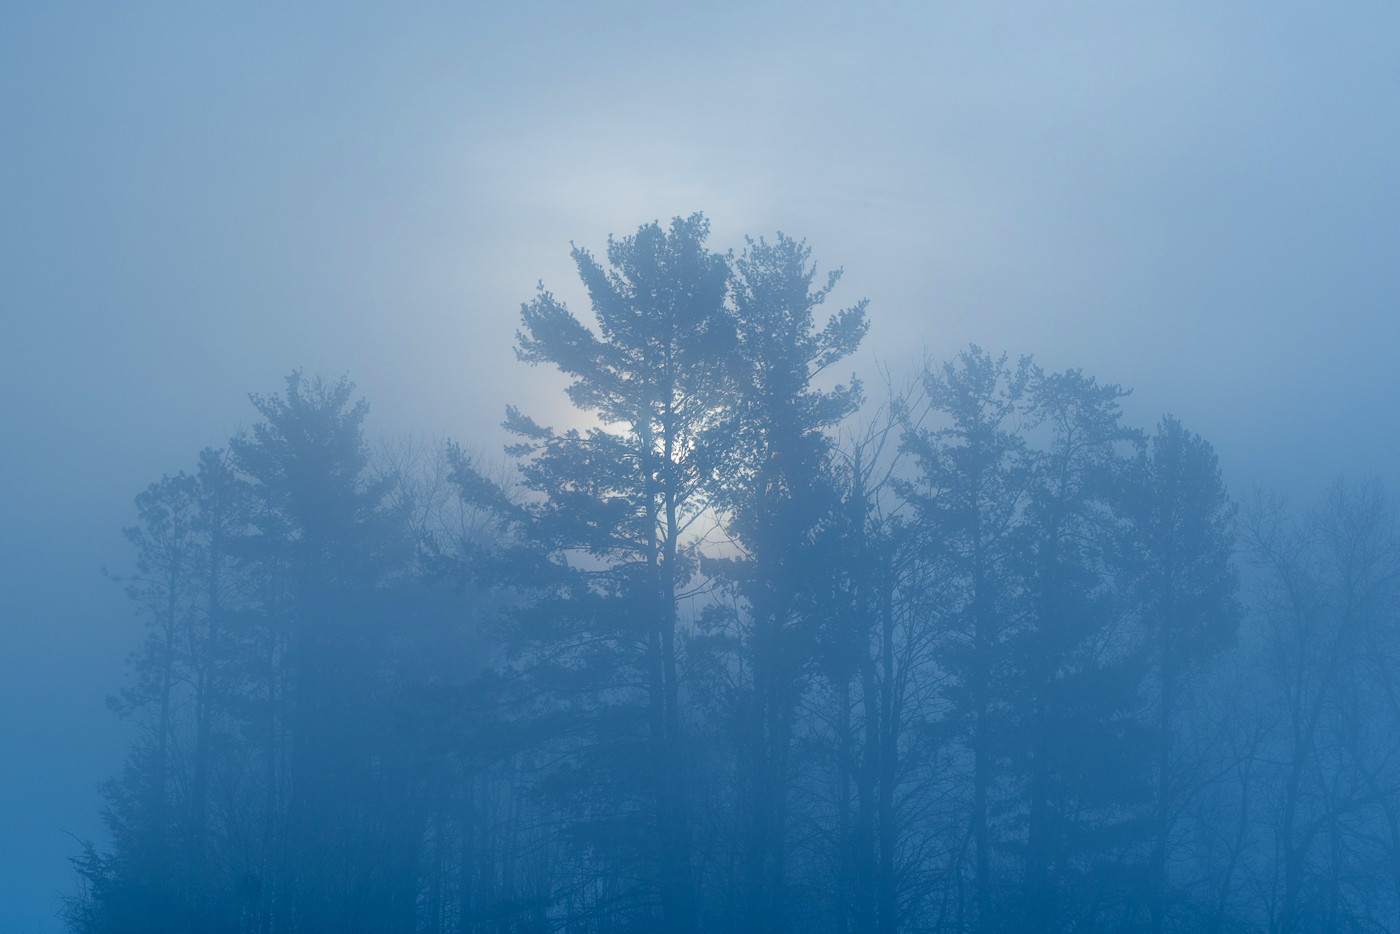 Fog and rising sun over white pines, St. Croix River Valley, Minnesota.